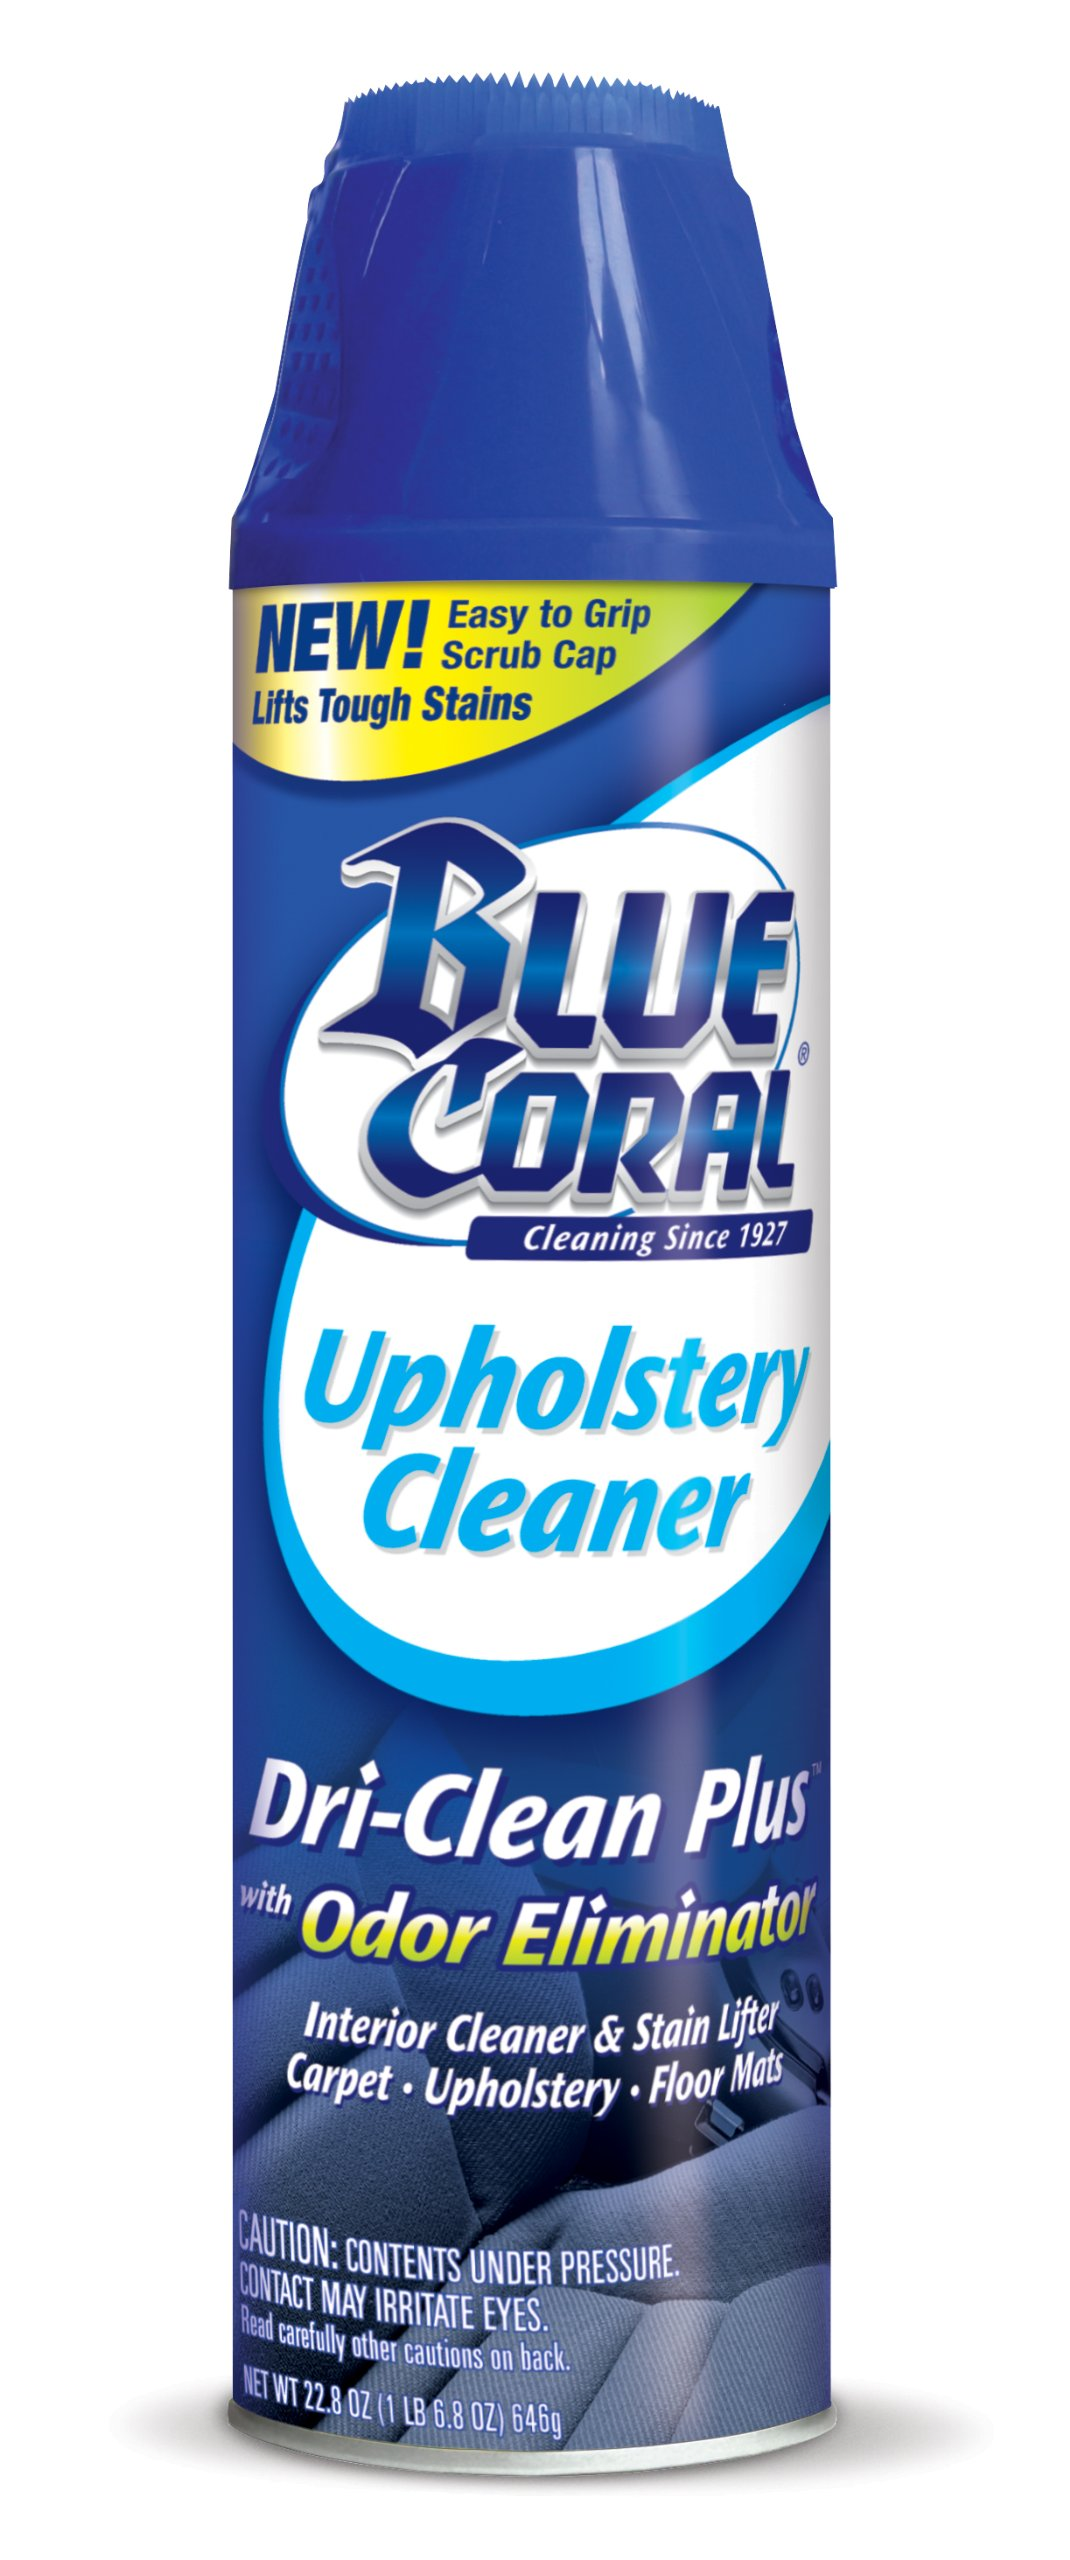 blue coral dc22 upholstery cleaner dri clean plus with odor eliminator 22 8 o chickadee. Black Bedroom Furniture Sets. Home Design Ideas